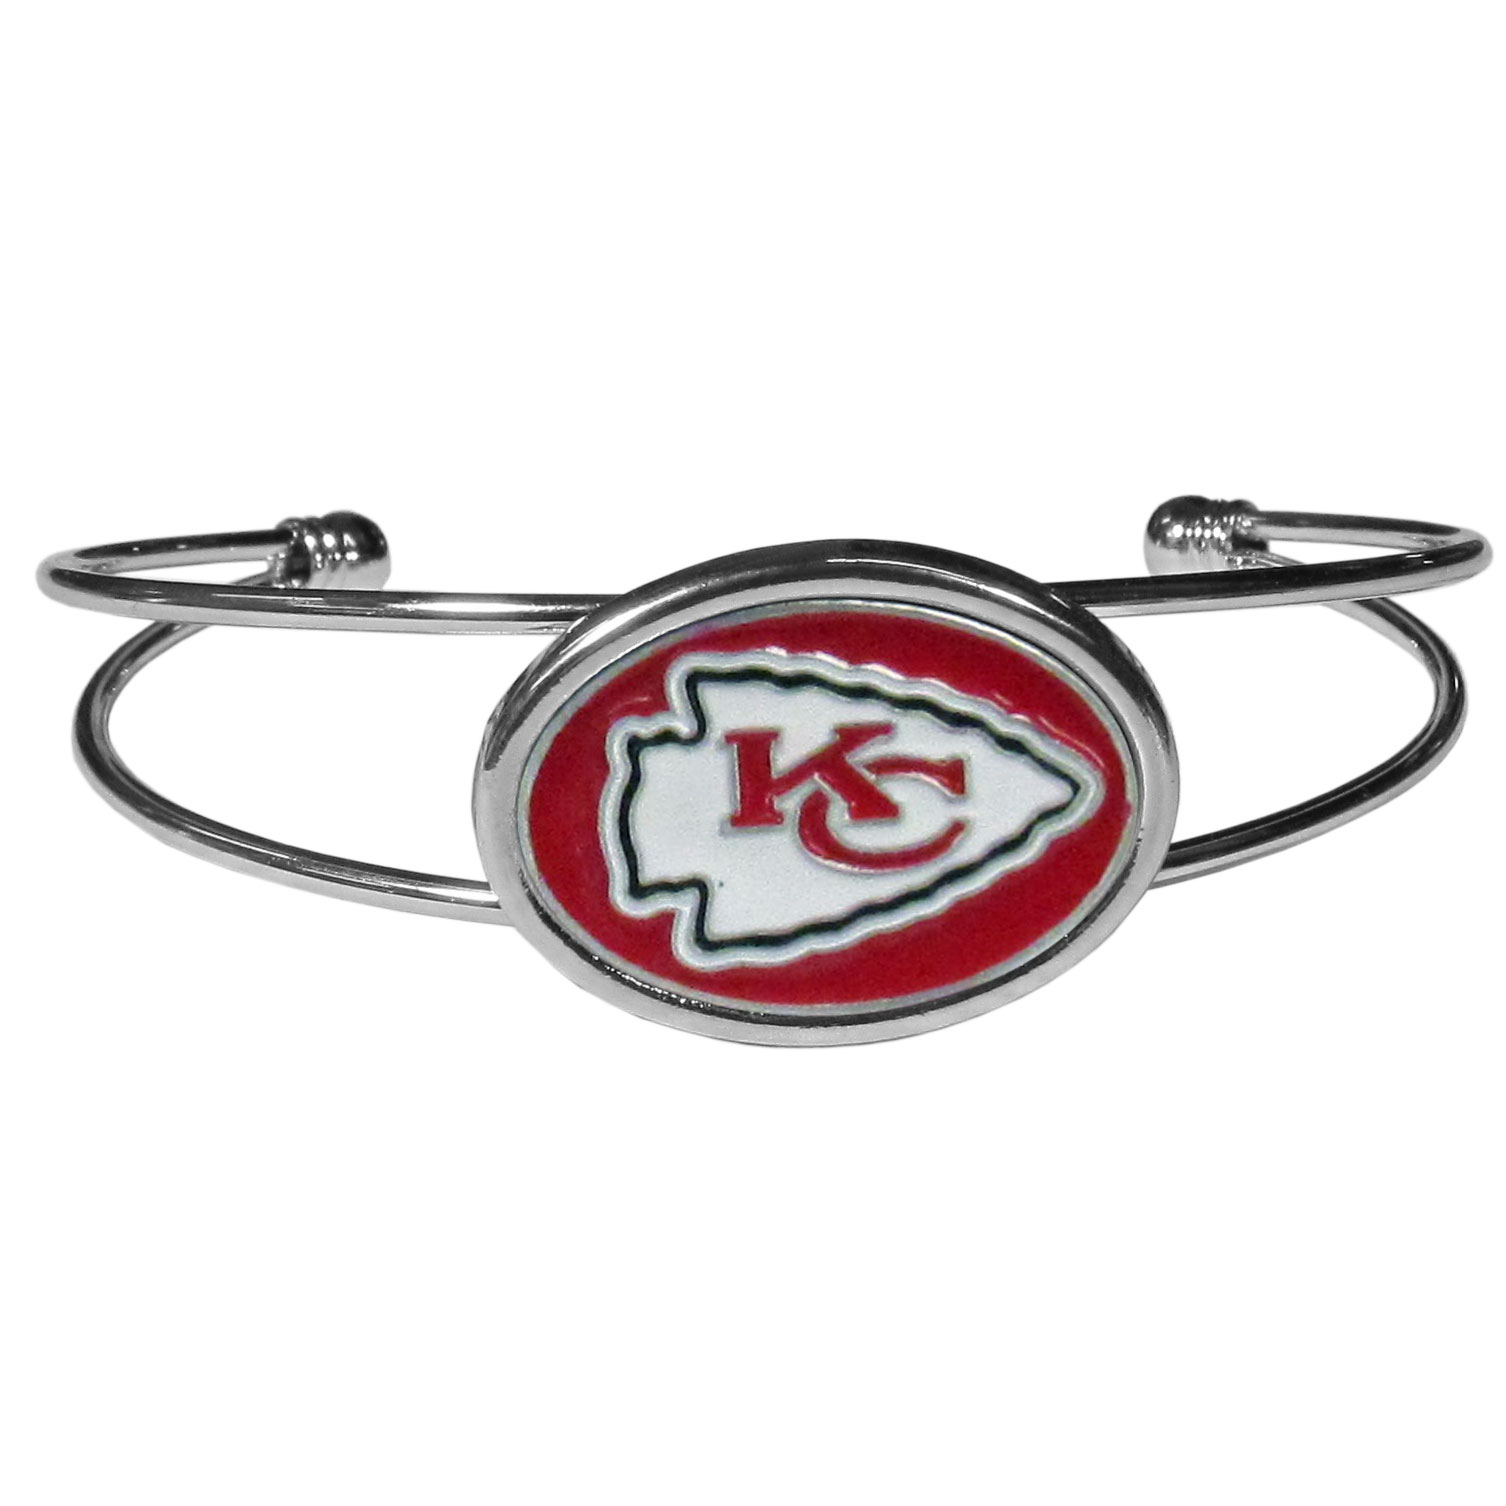 Kansas City Chiefs Cuff Bracelet - These comfortable and fashionable double-bar cuff bracelets feature a 1 inch metal Kansas City Chiefs inset logo with enameled detail.